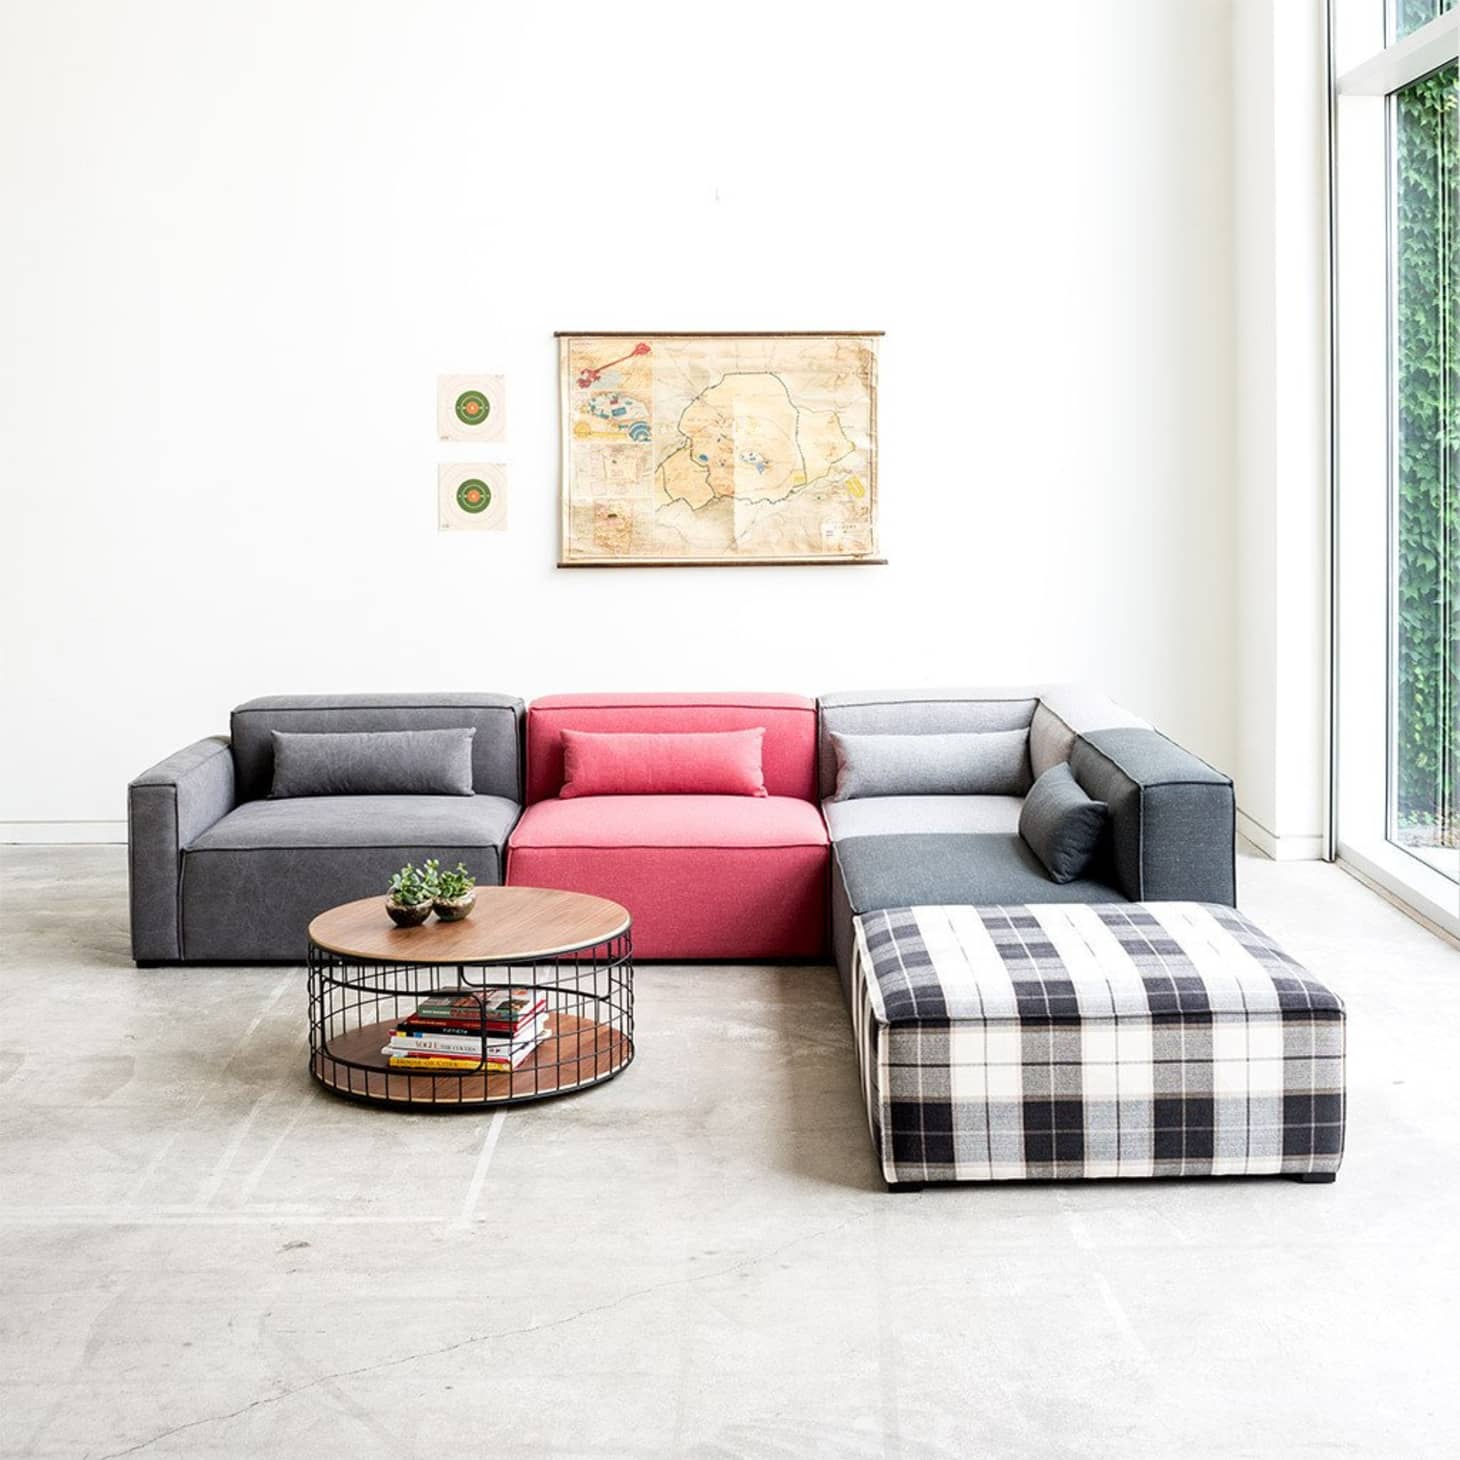 Wondrous Expandable Modular Best Sectional Sofas Apartment Therapy Theyellowbook Wood Chair Design Ideas Theyellowbookinfo